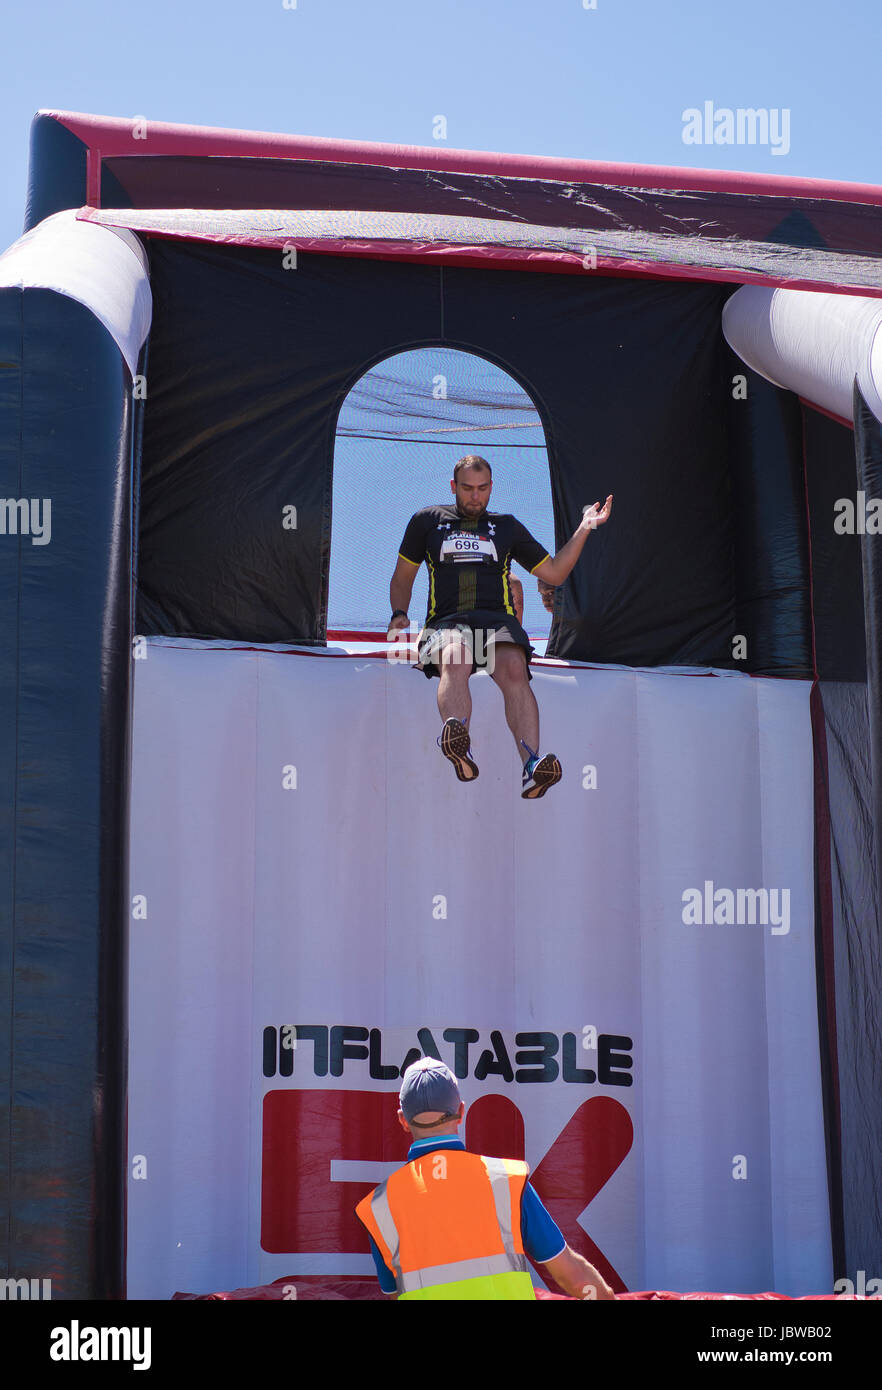 Man leaping off giant inflatable obstacle in Surrey England - Stock Image